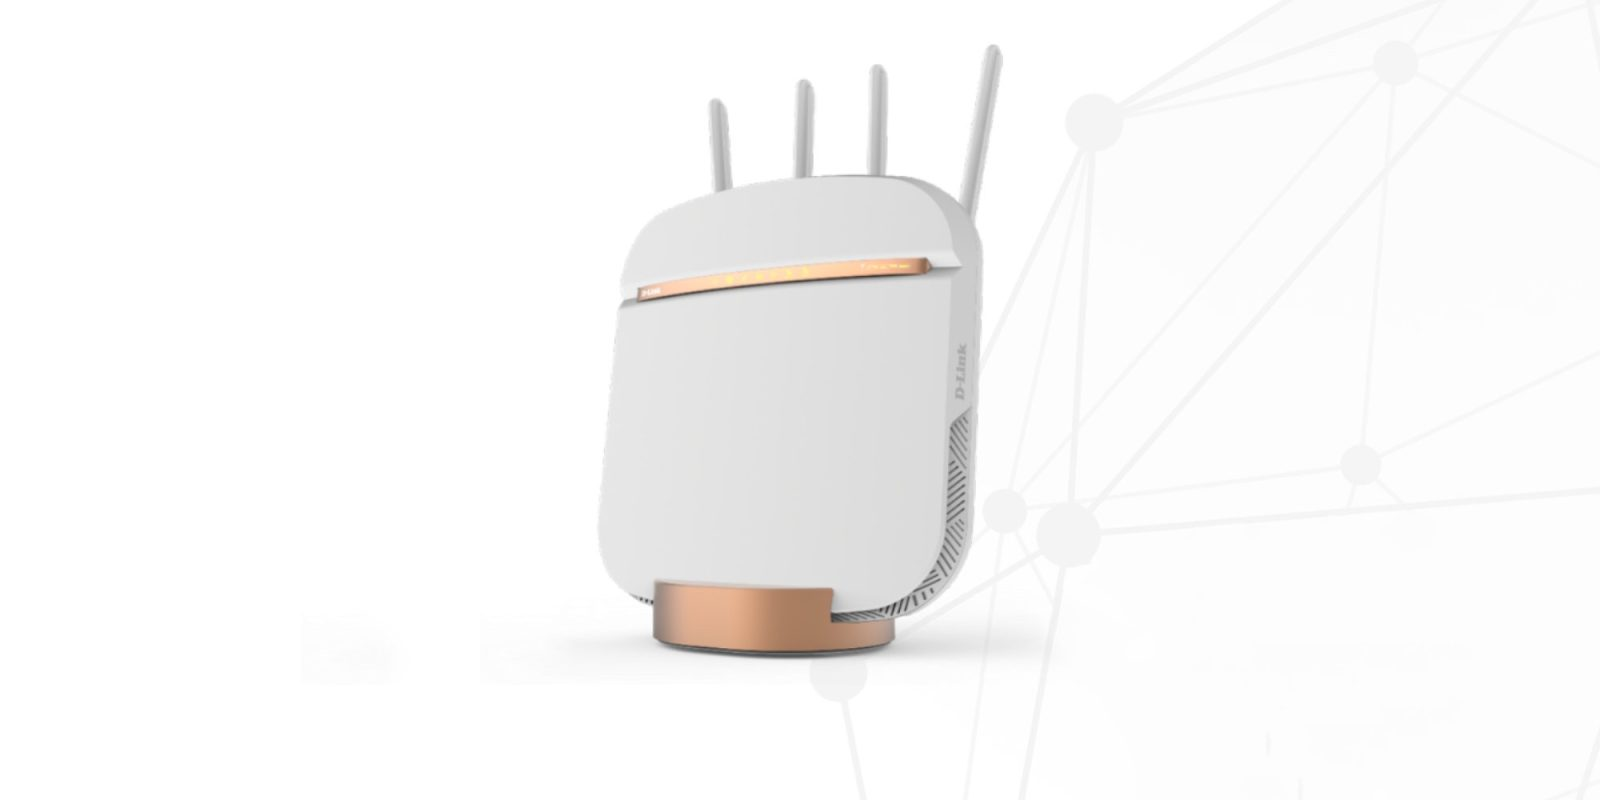 D-Link's 5G router may let you cut the cord    again - 9to5Toys